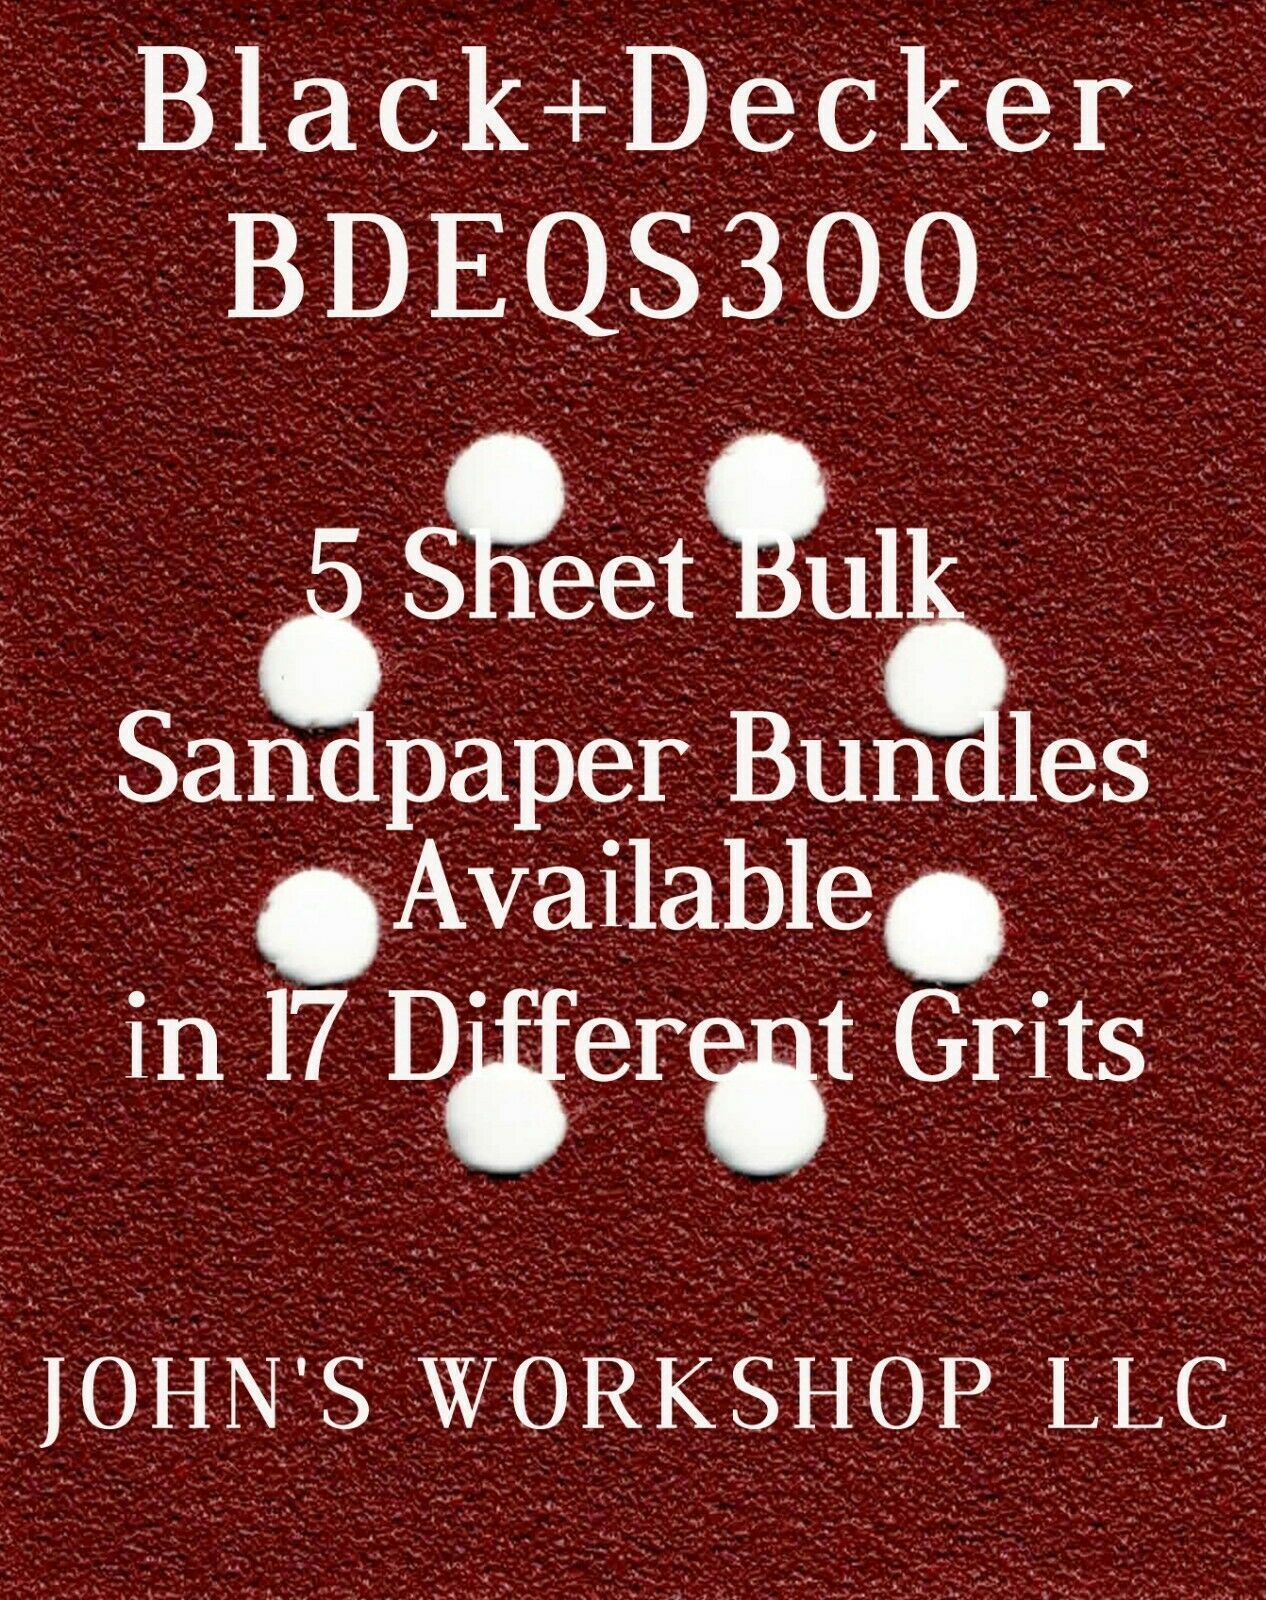 Primary image for Black+Decker BDEQS300 - 1/4 Sheet - 17 Grits - No-Slip - 5 Sandpaper Bulk Bdls